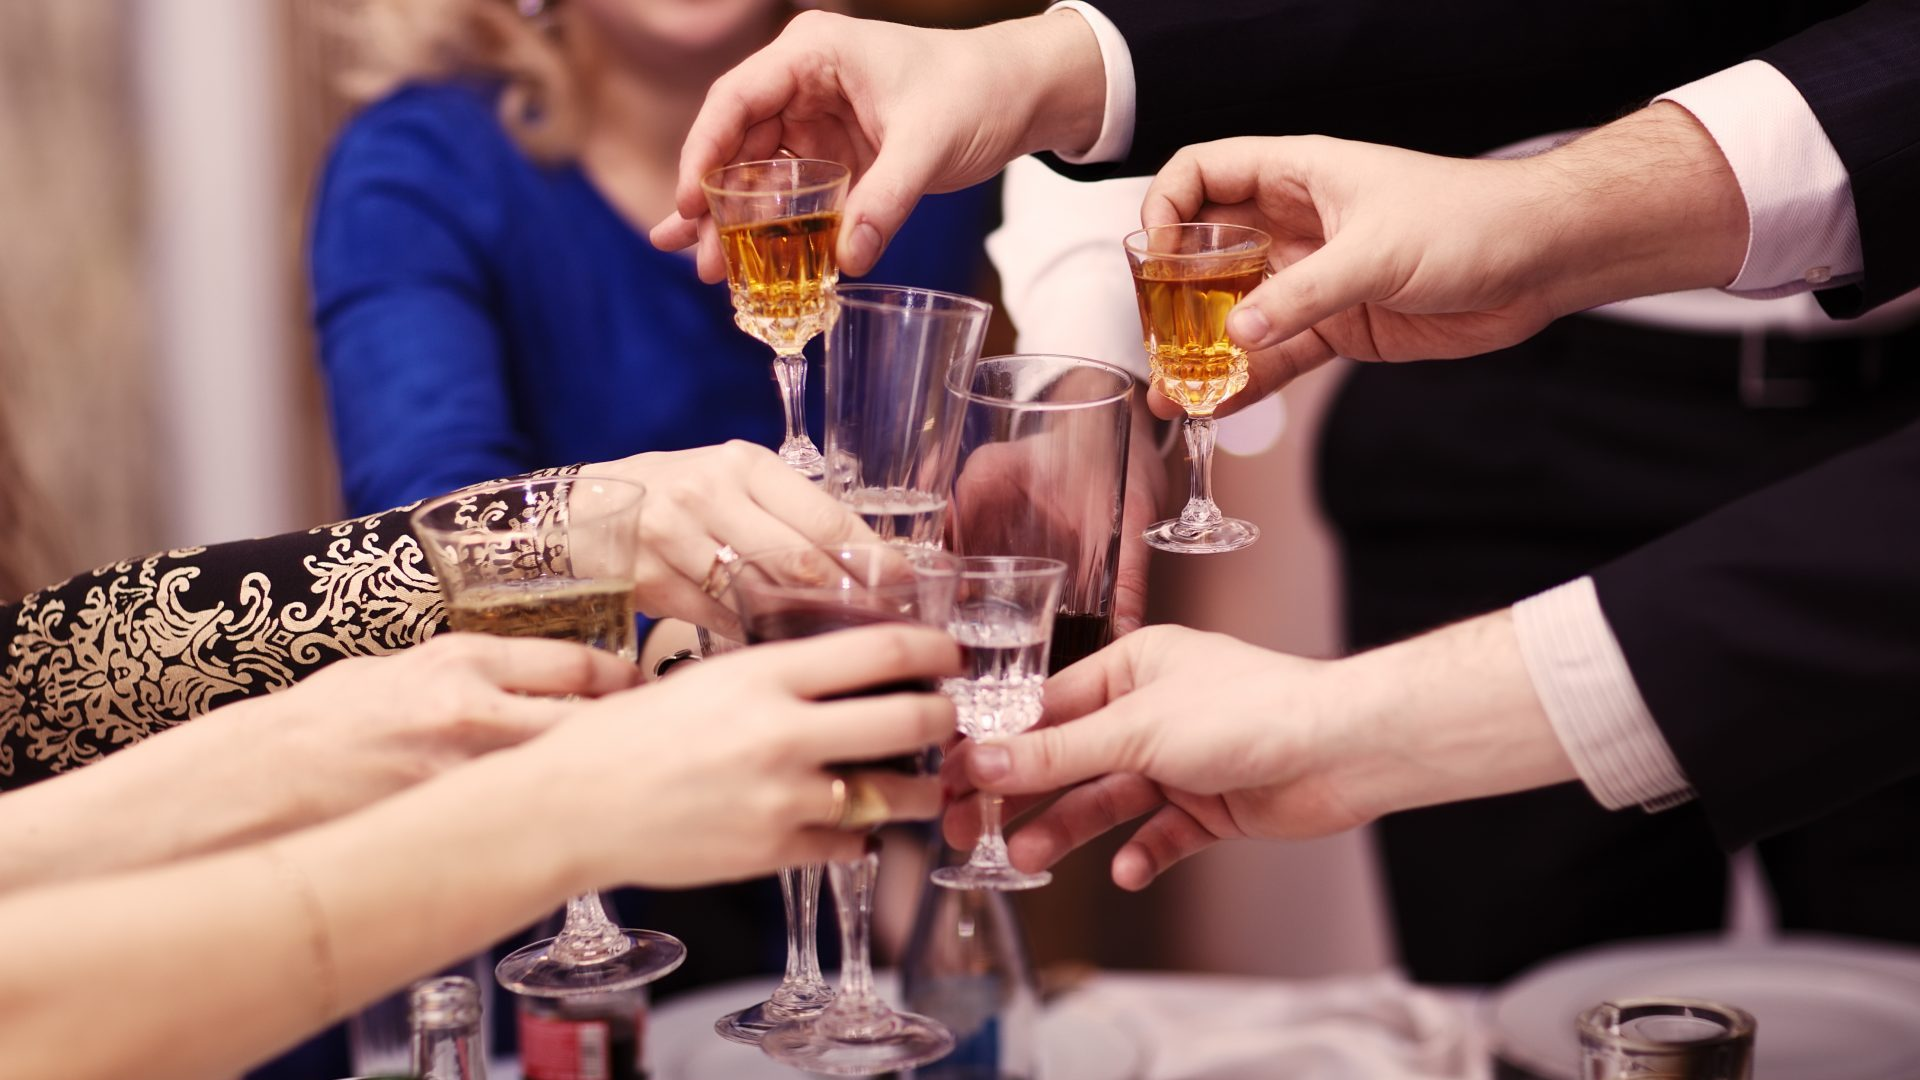 Group of people toasting at a celebration clinking their glasses together in congratulations , close up view of their hands